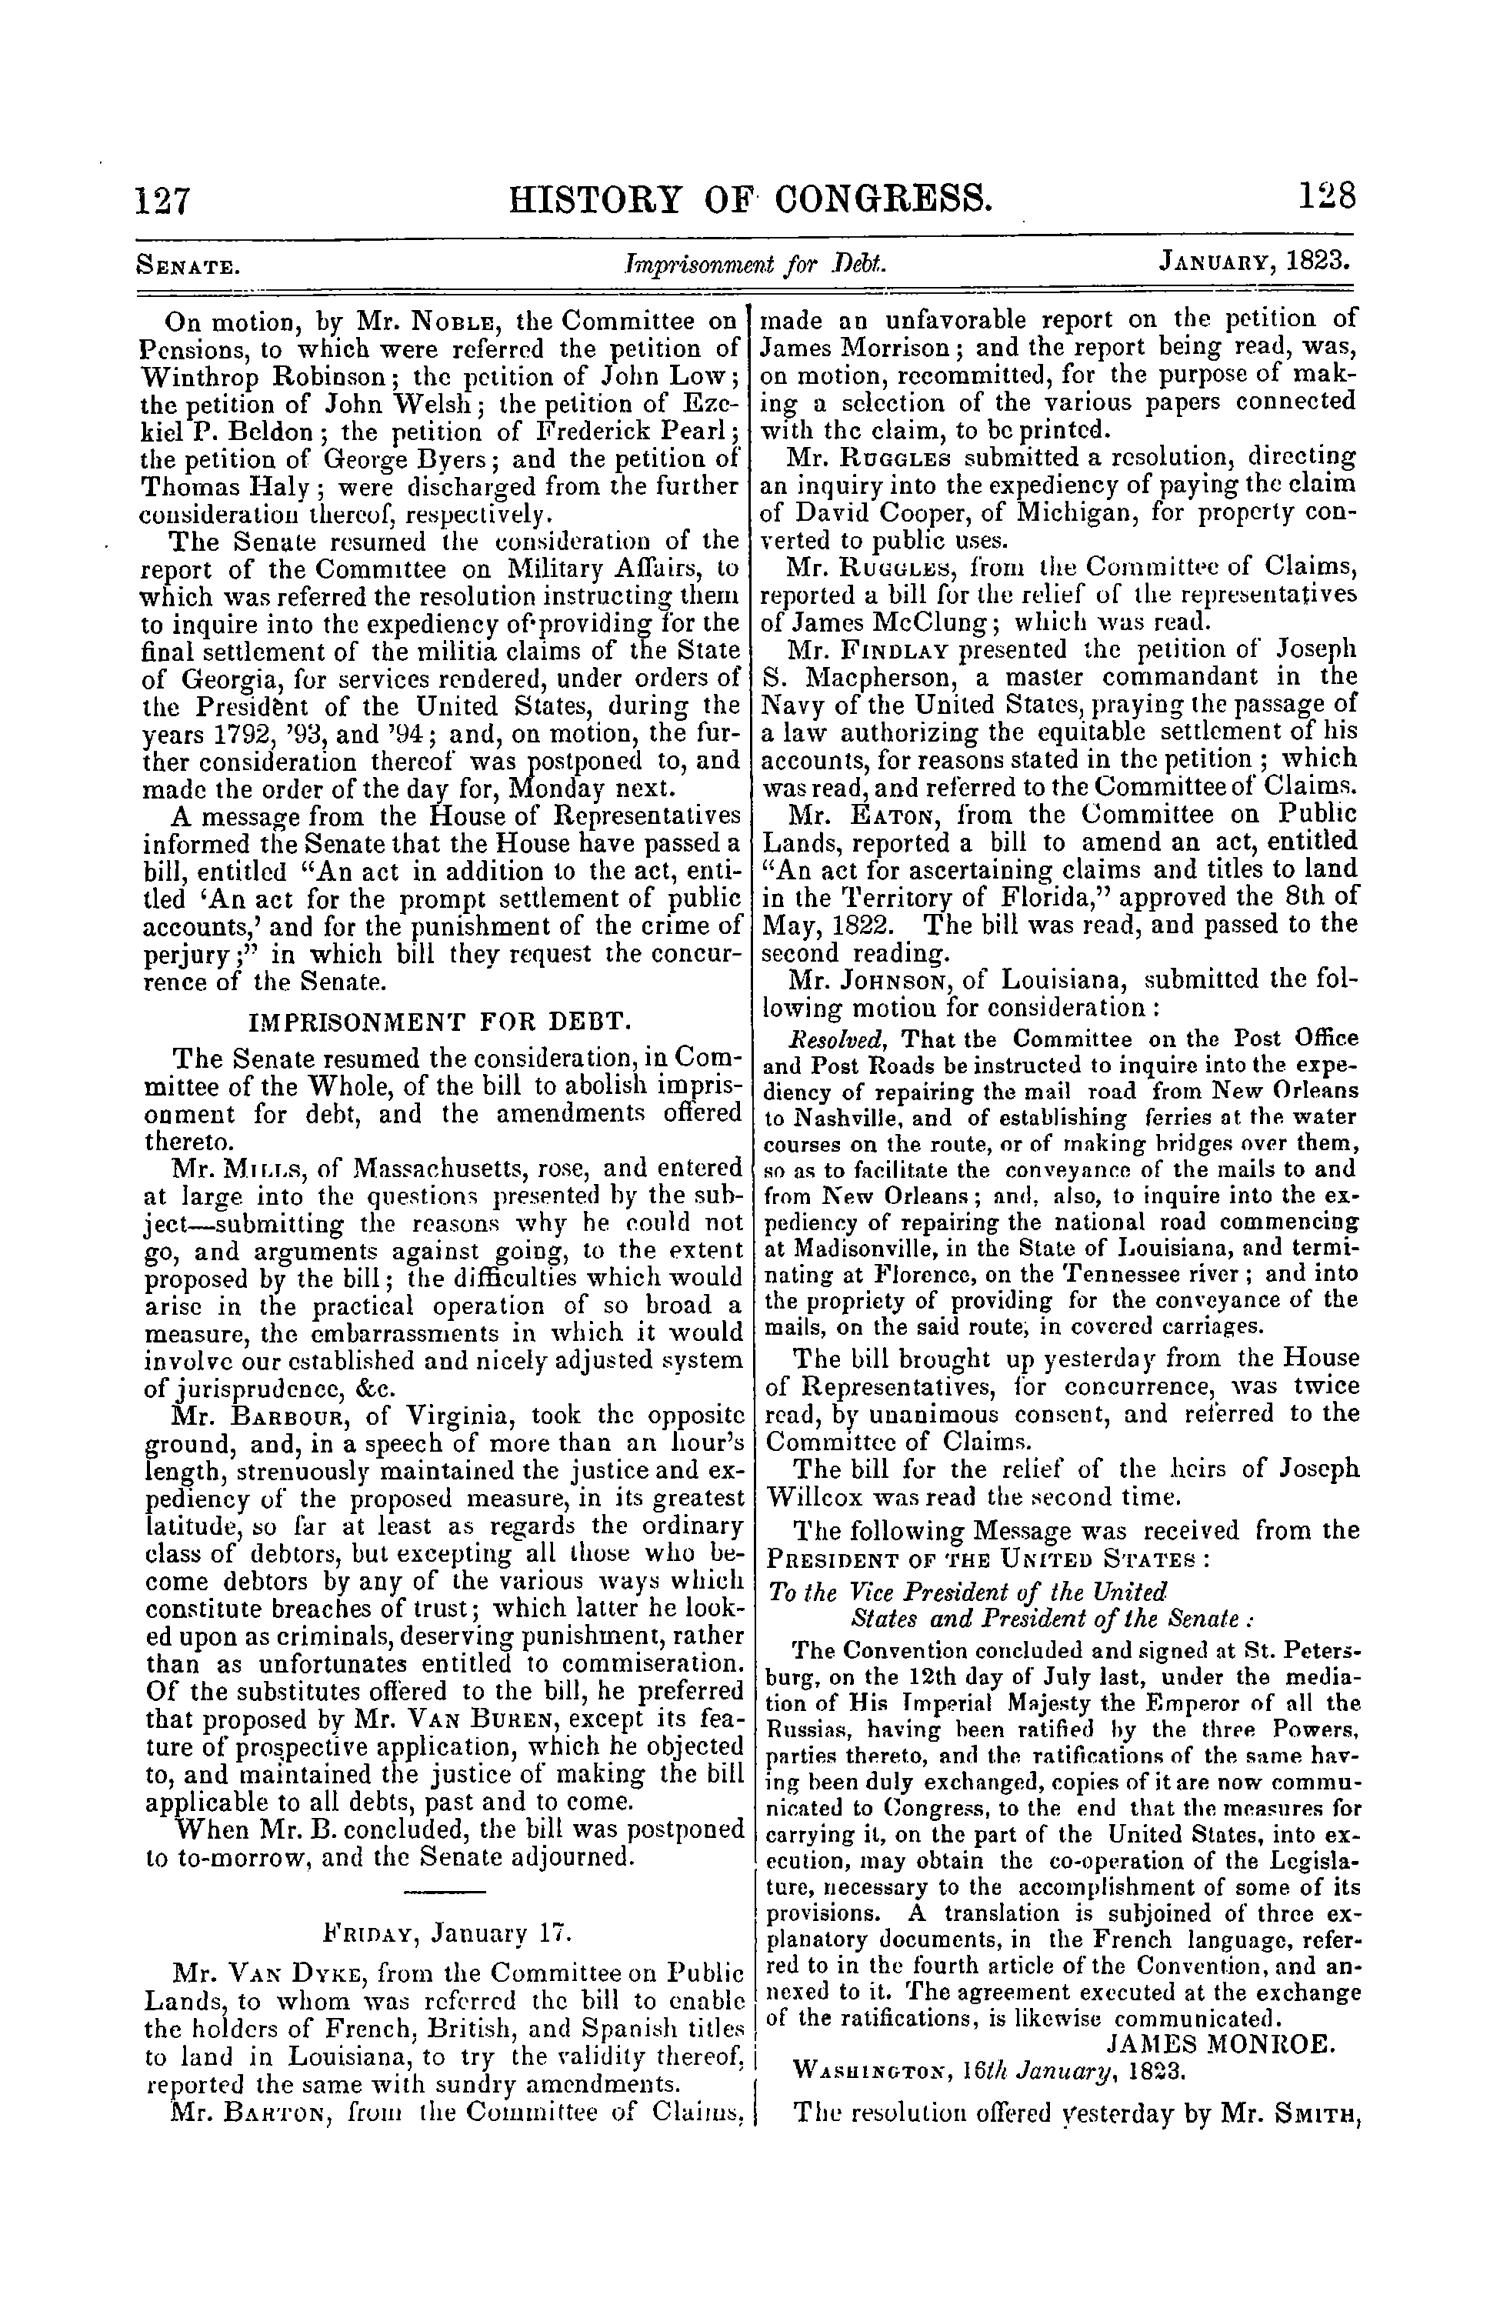 The Debates and Proceedings in the Congress of the United States, Seventeenth Congress, Second Session                                                                                                      127